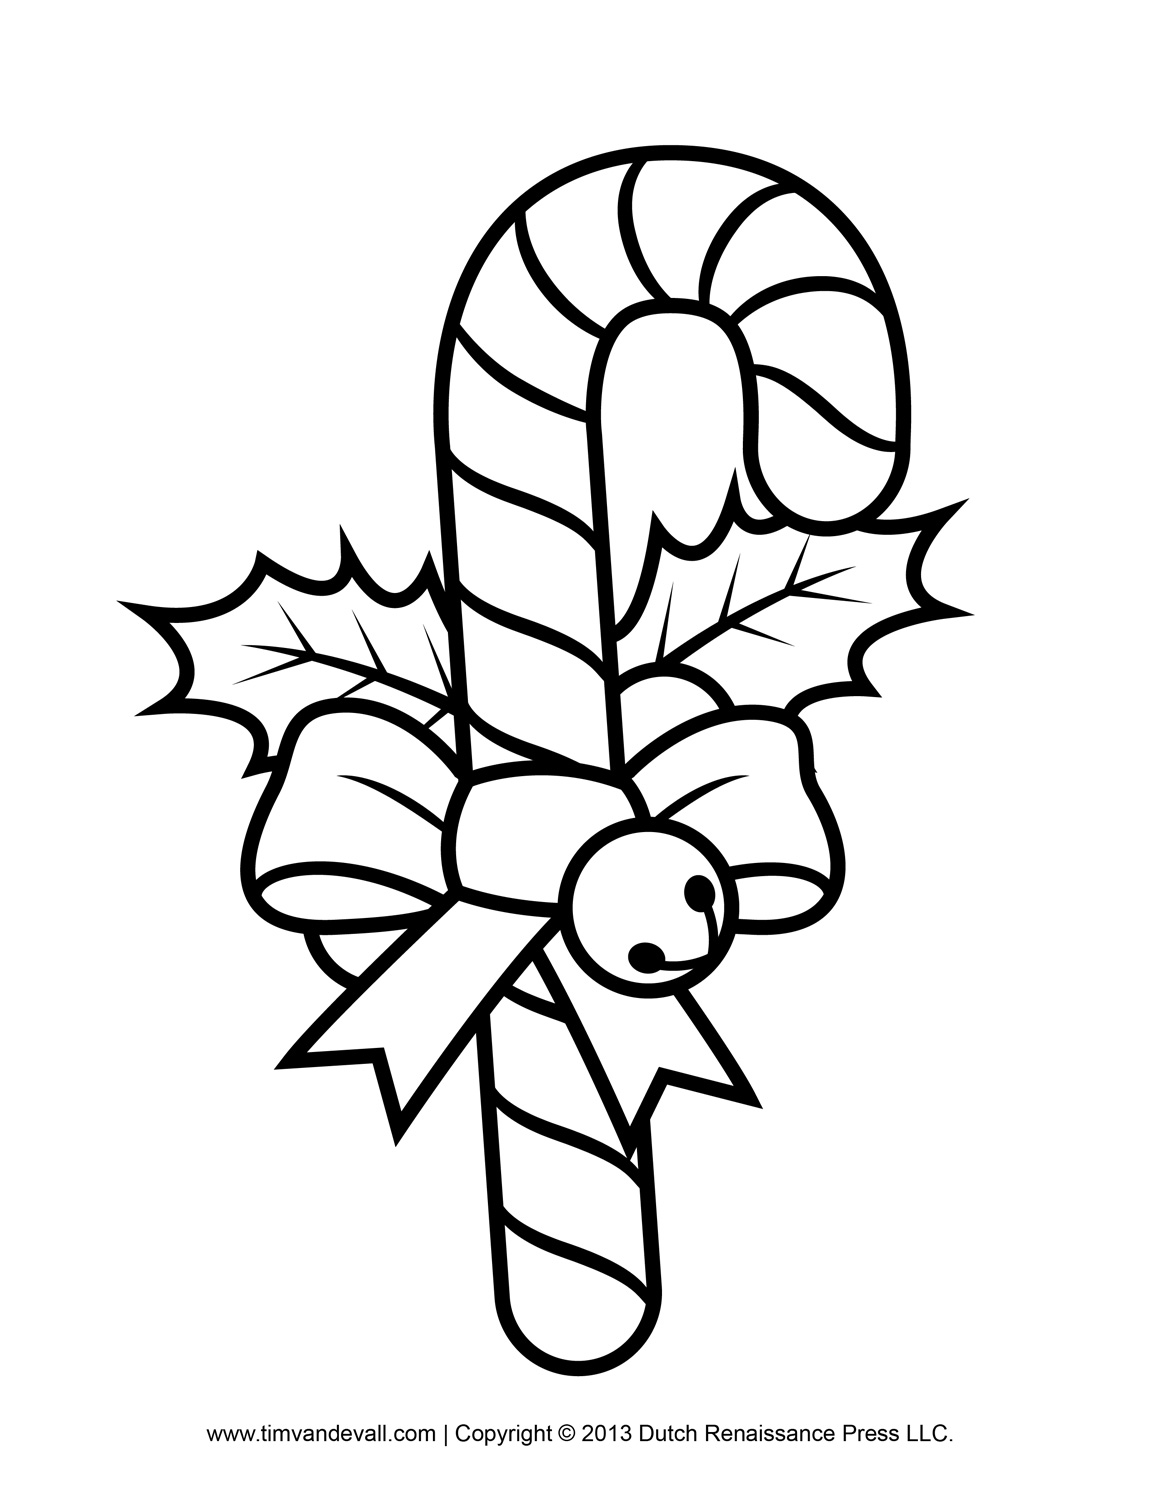 coloring christmas clipart black and white clip art christmas tree black and white clipart panda white clipart and christmas coloring black